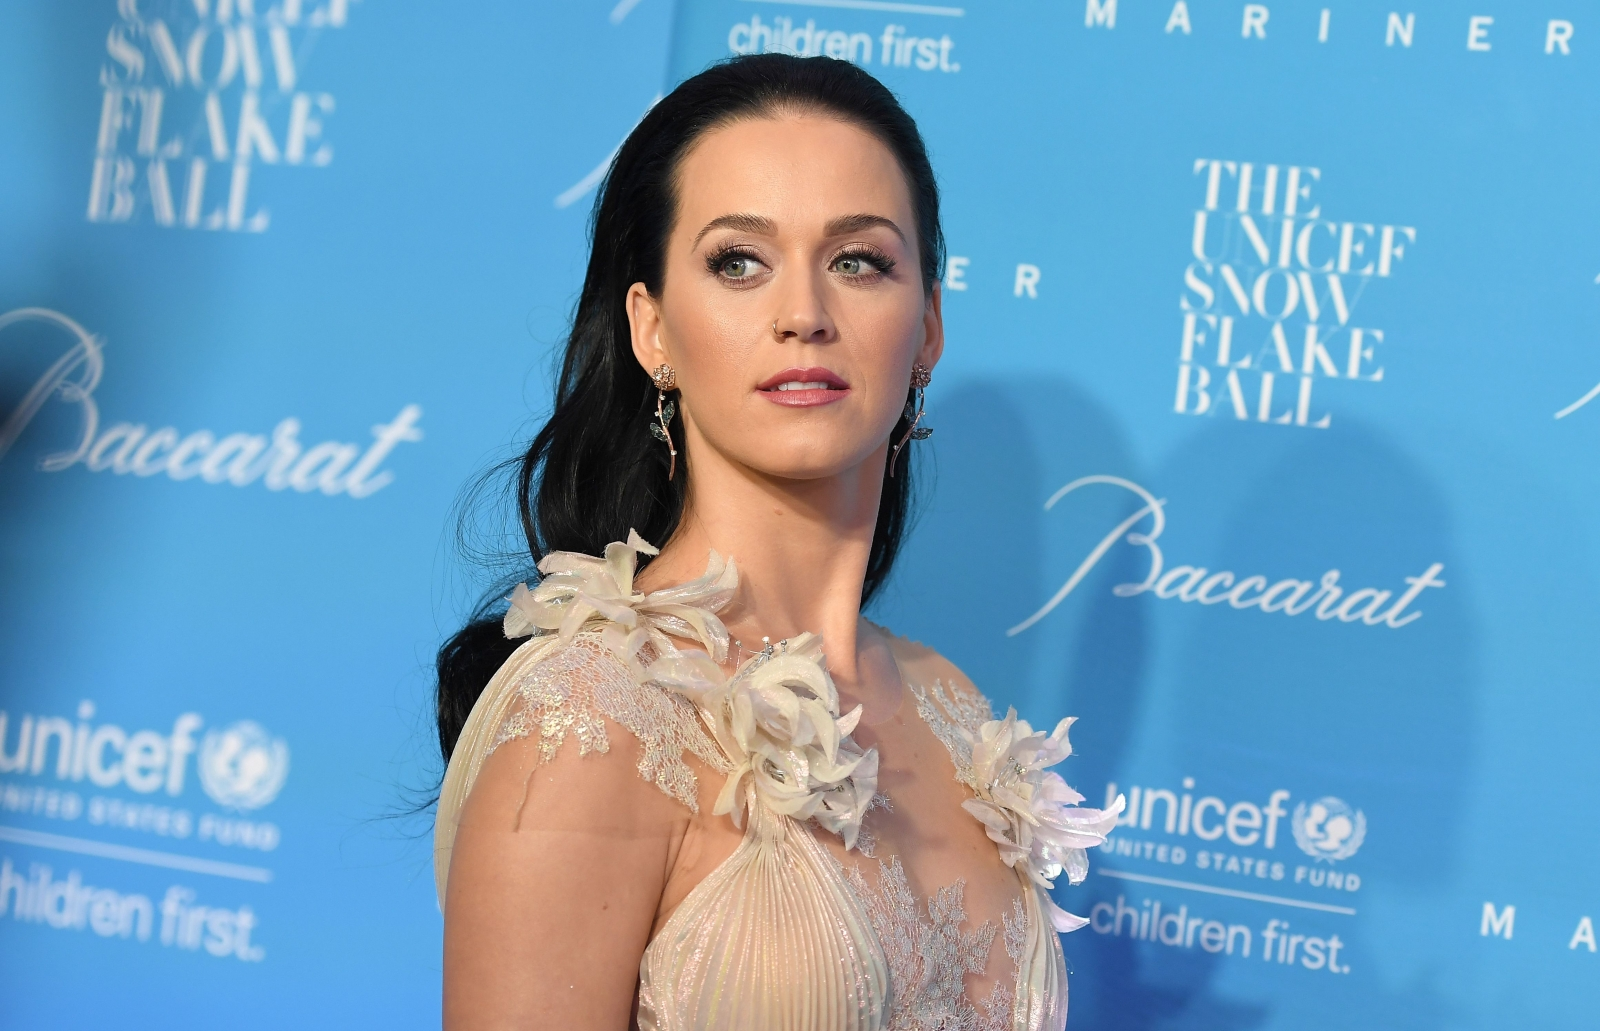 Katy Perry new album: Singer takes on Donald Trump election win and ... Katy Perry